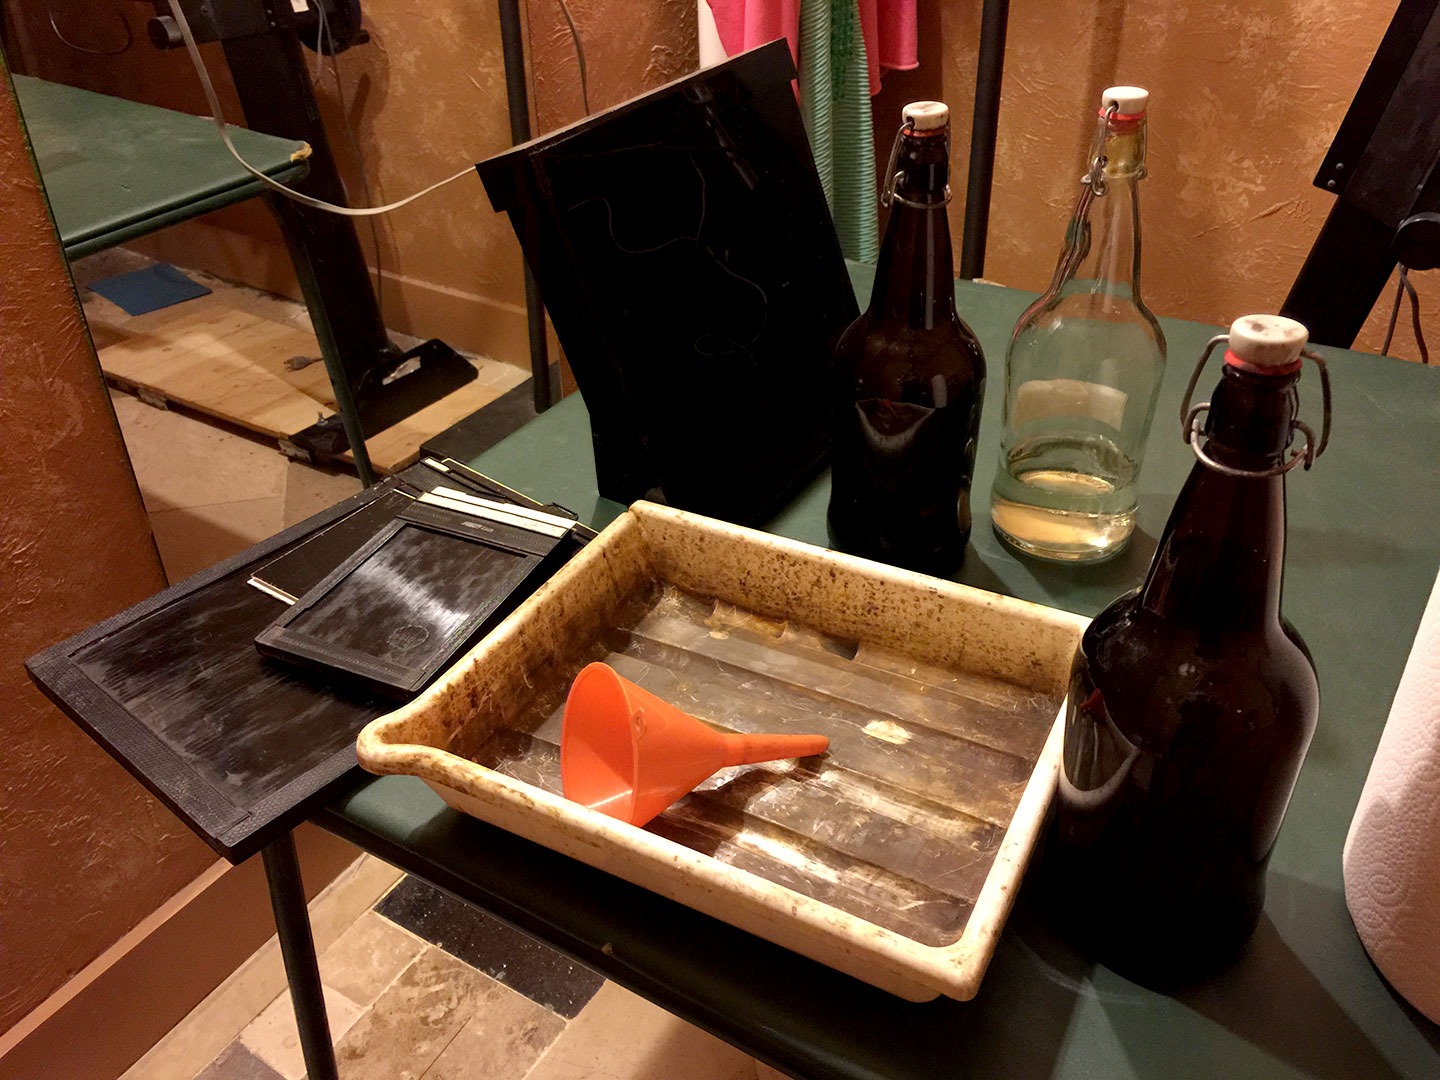 Chemicals ready for wet plate photography